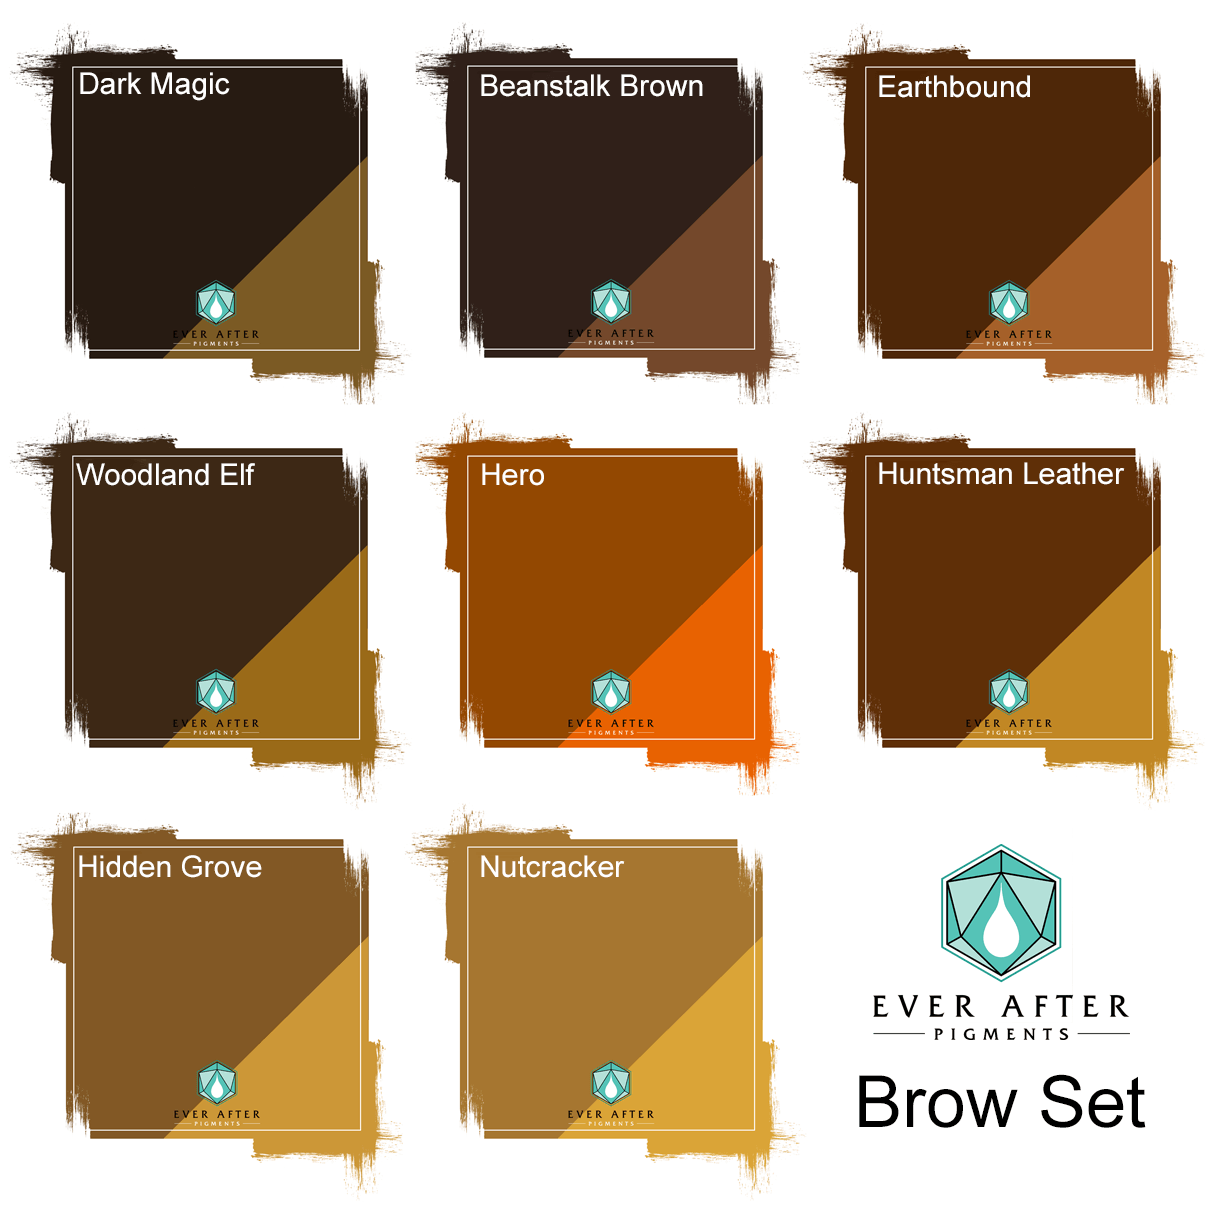 Brow Set-Browbox